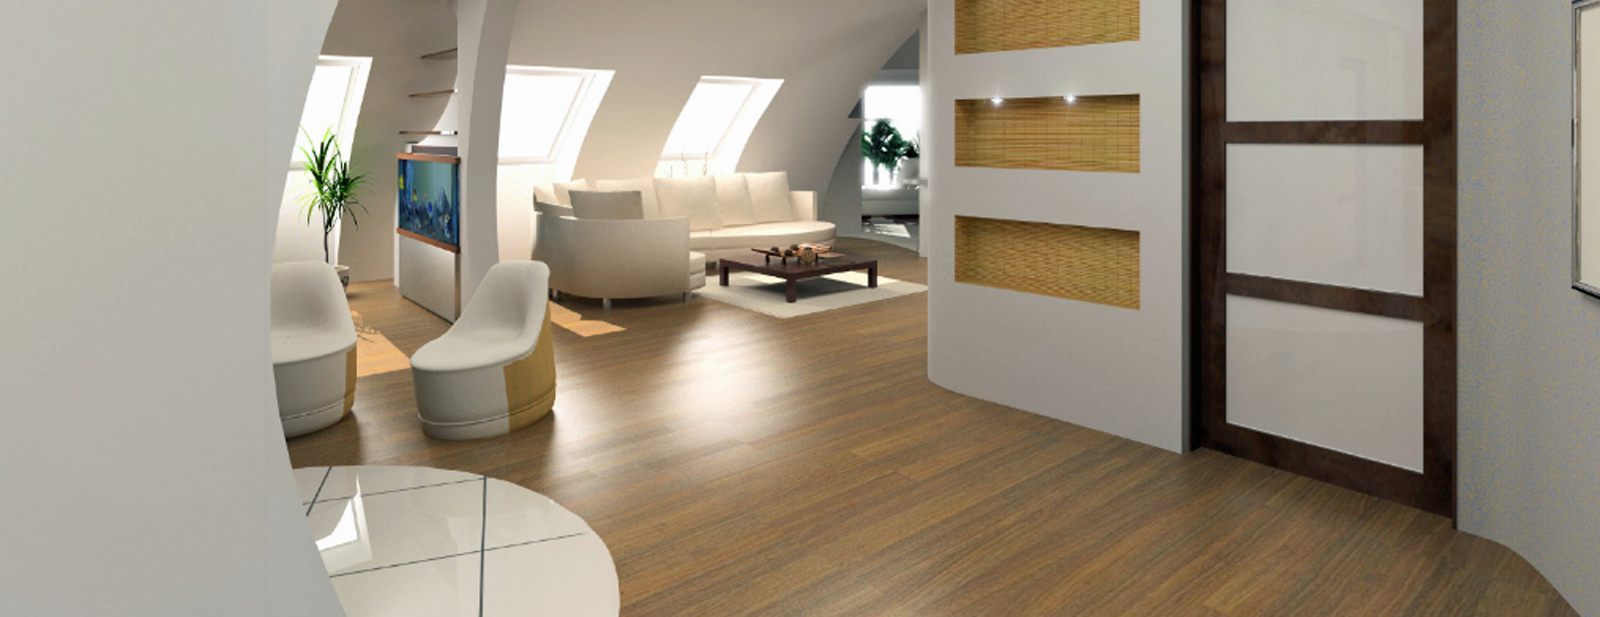 Laminate Flooring Experts And Installation Let Us Help You Choose The Best Durable Floor For Your Home Decorating Project